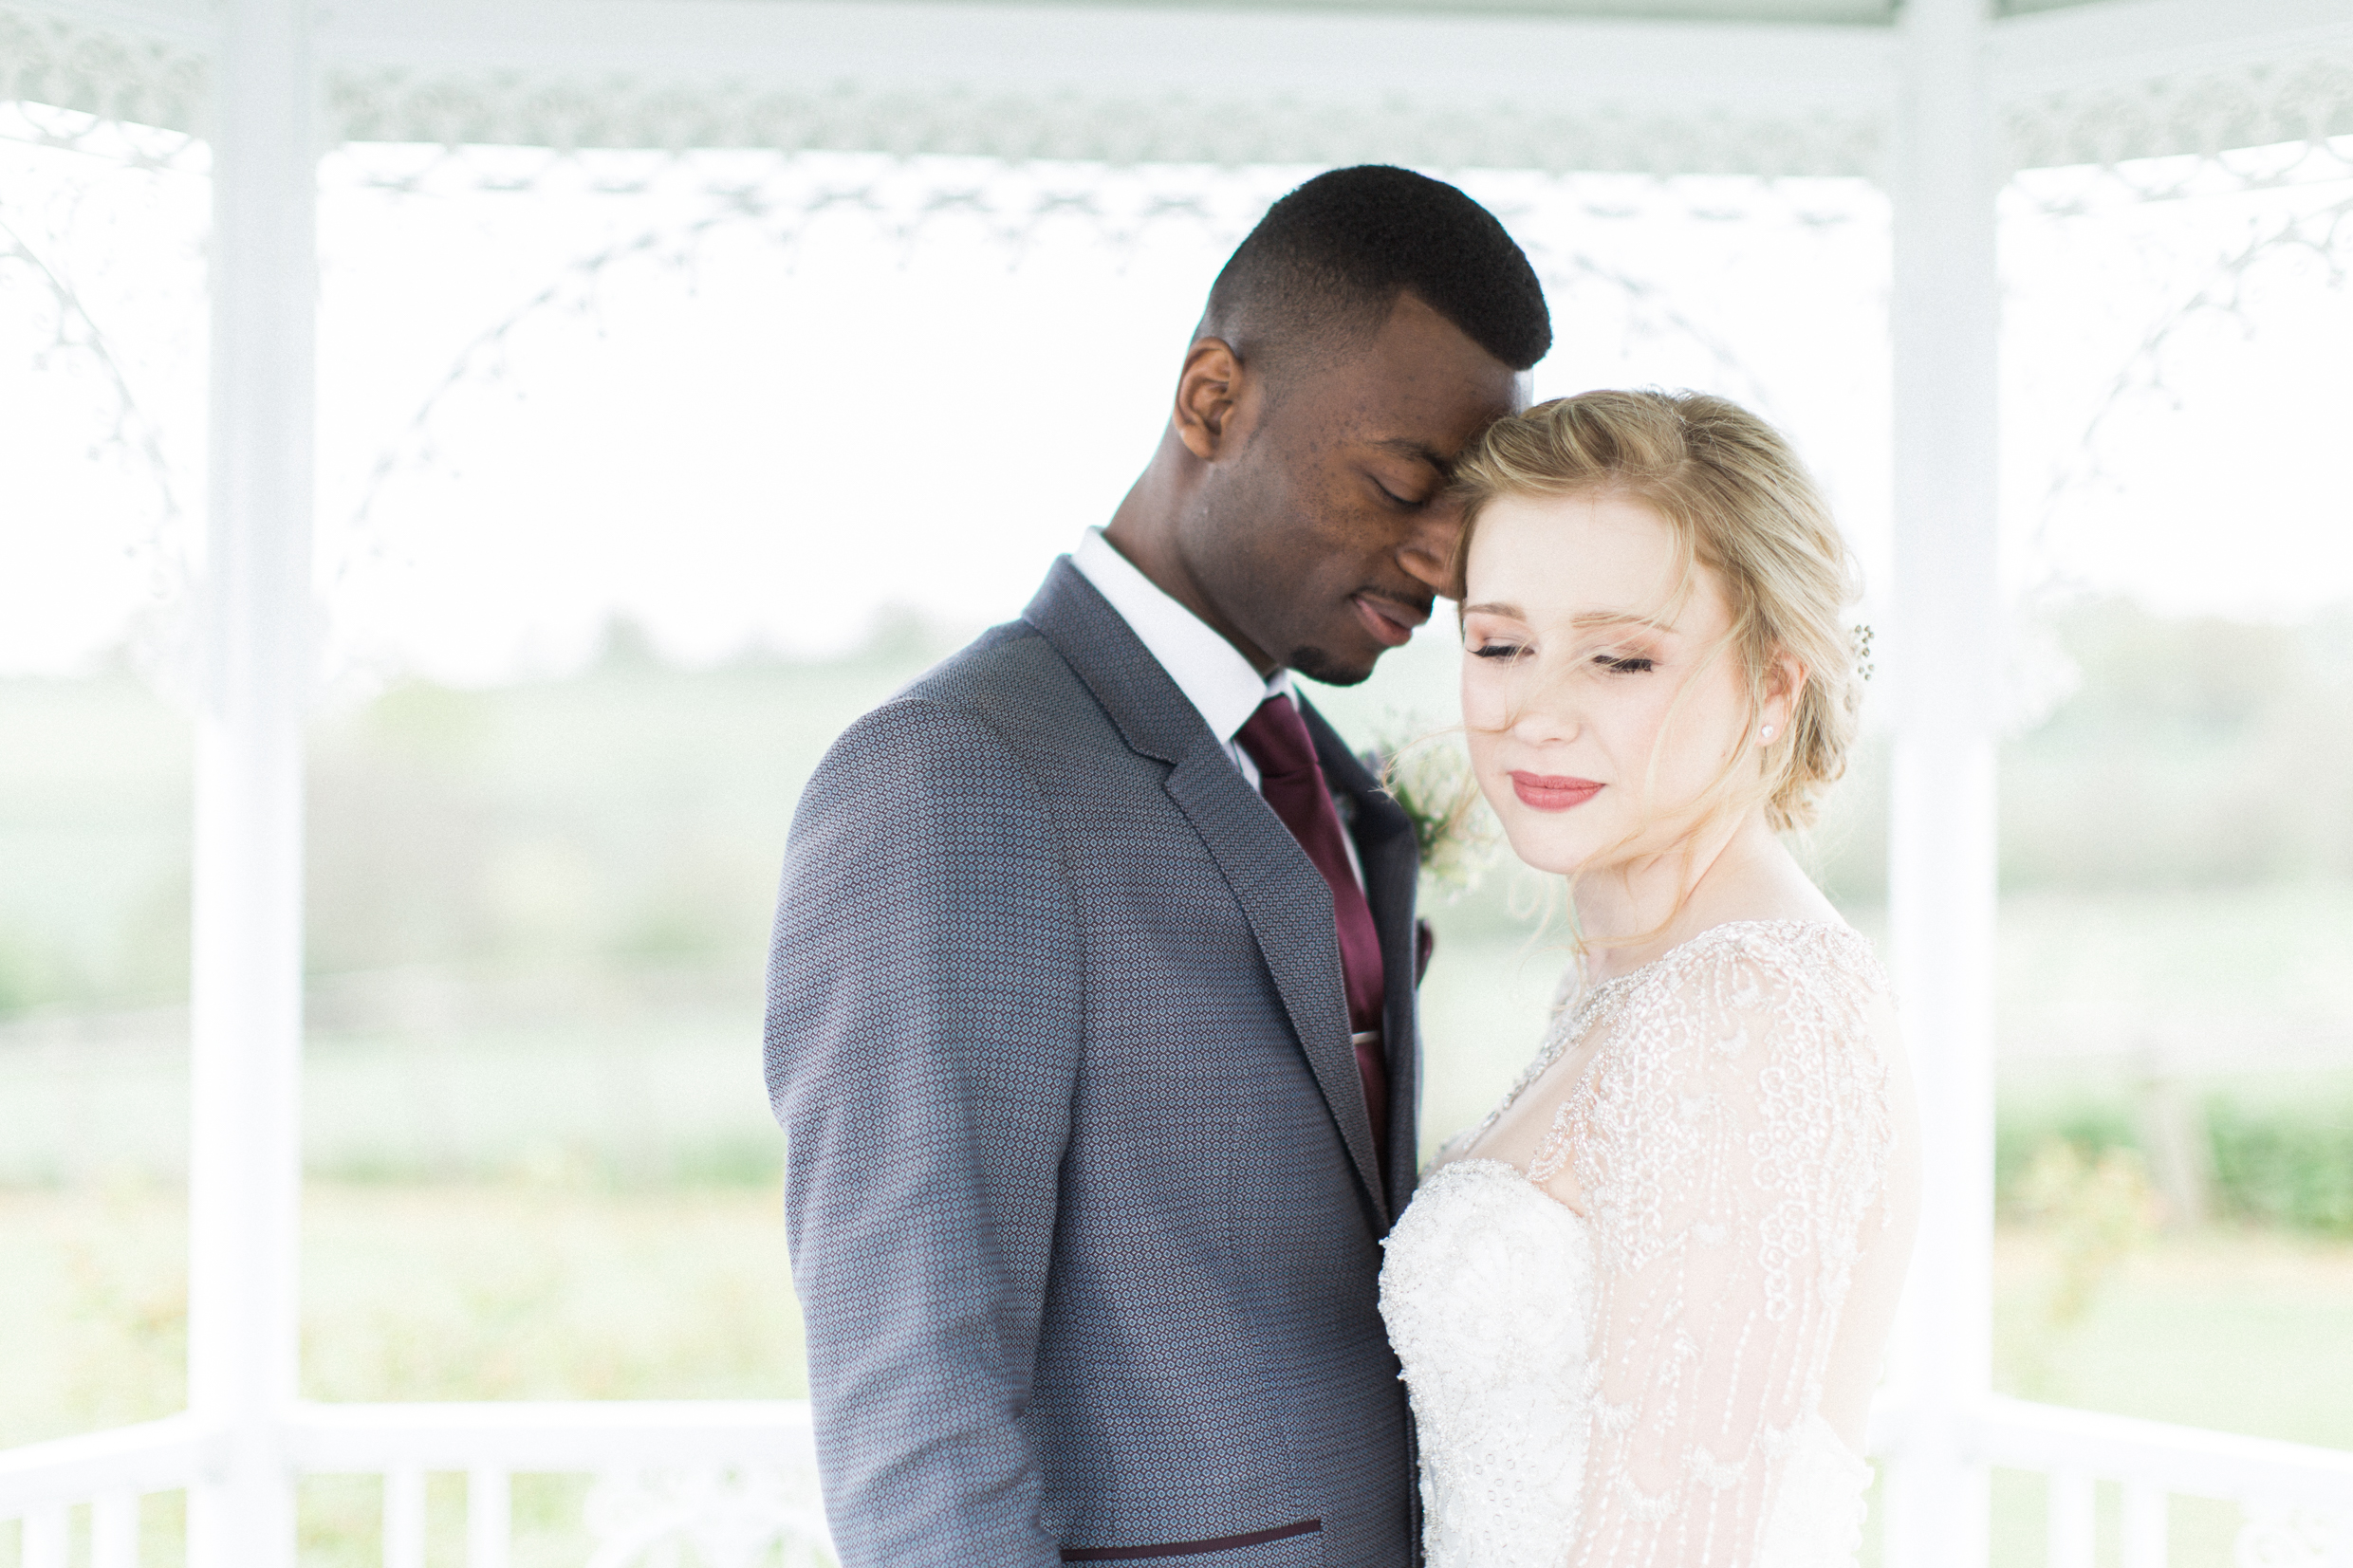 haley & jermaine-37.jpg